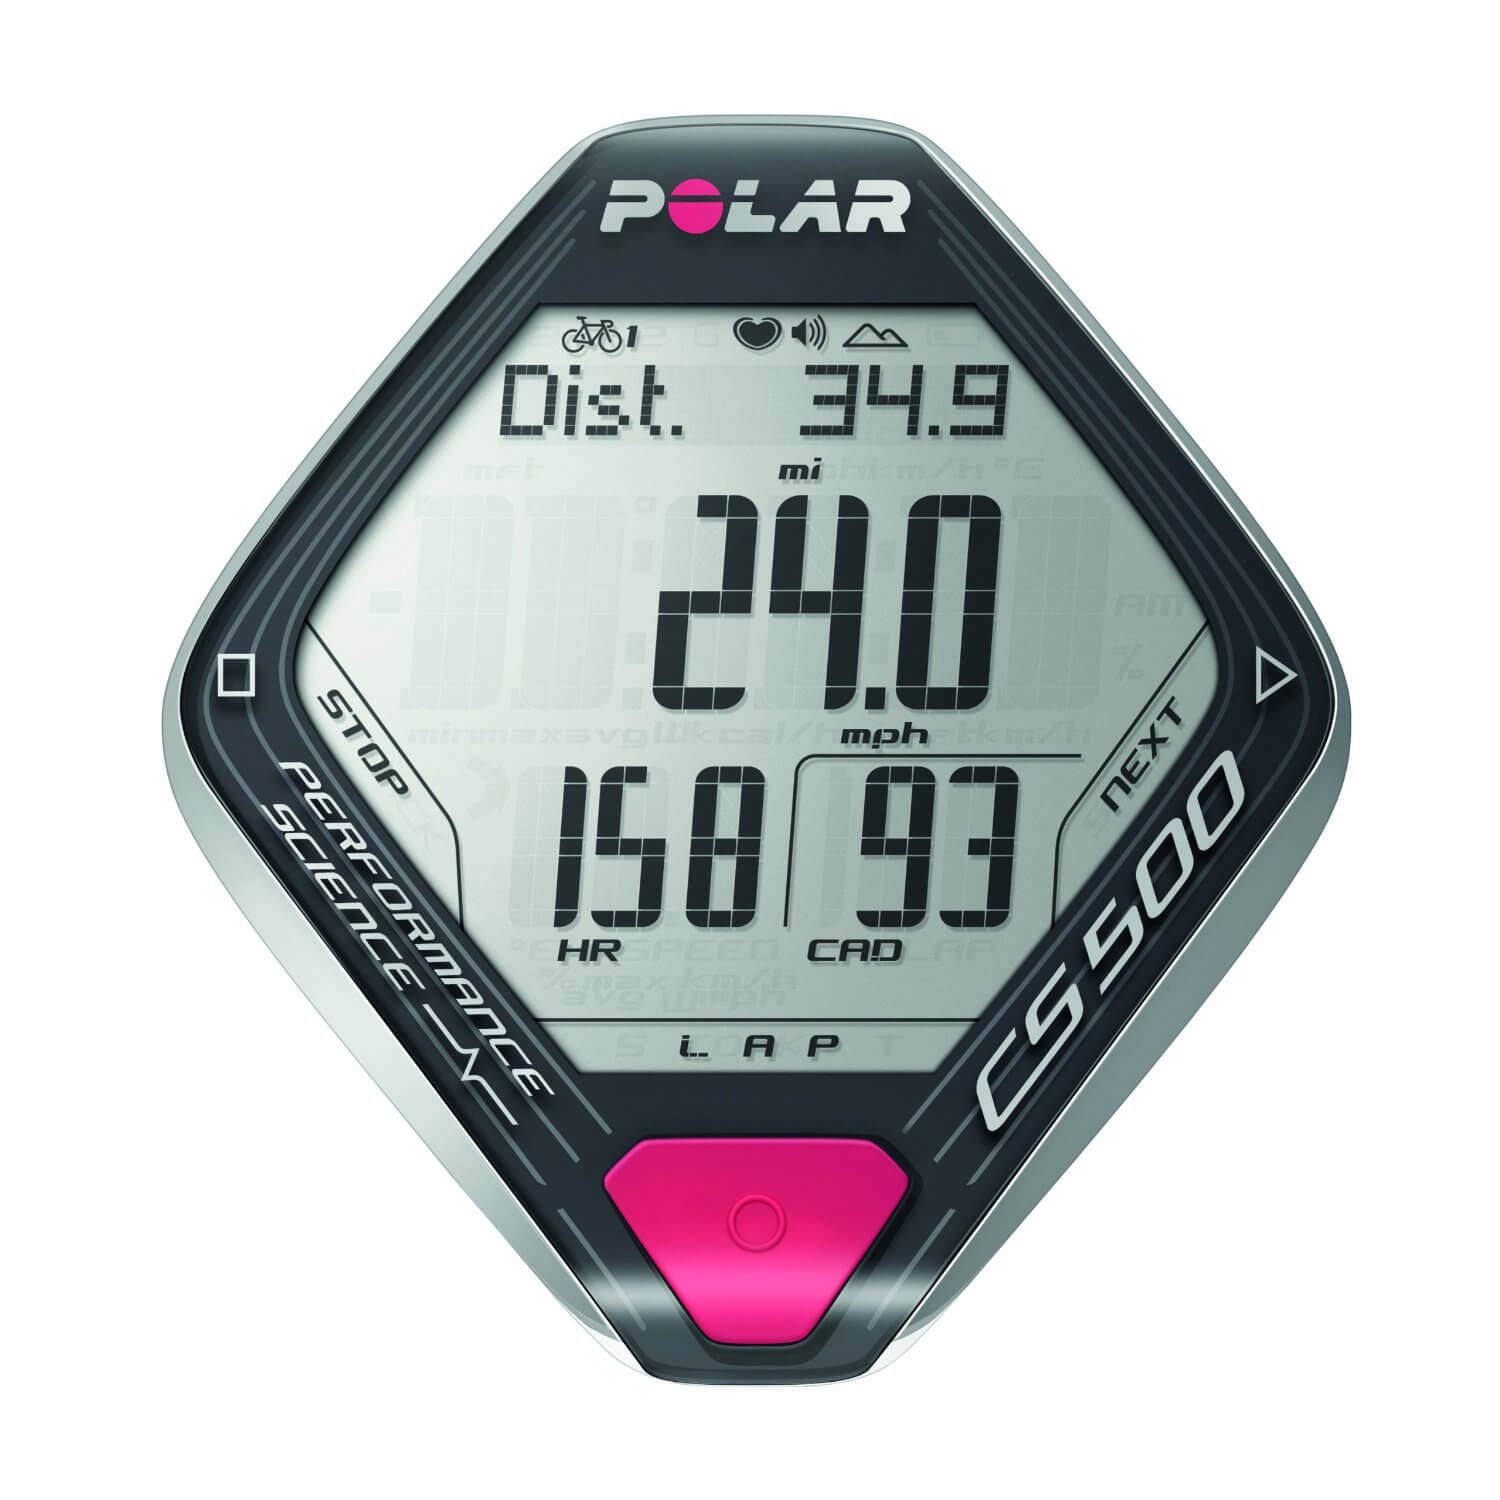 Polar CS500 Cardiofrequenzimetro